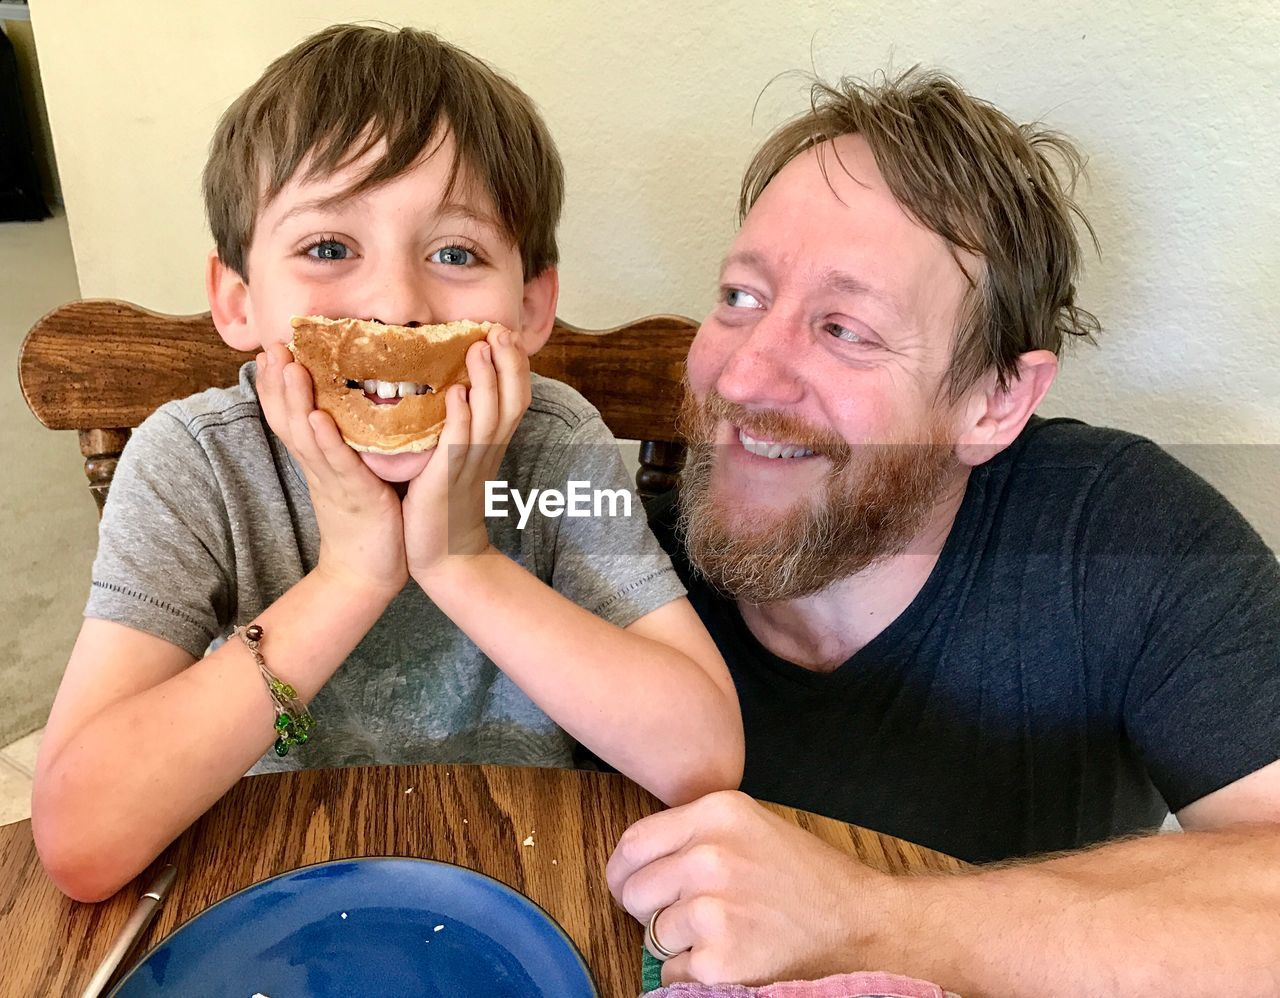 Close-Up Of Boy Eating Food With Father At Table